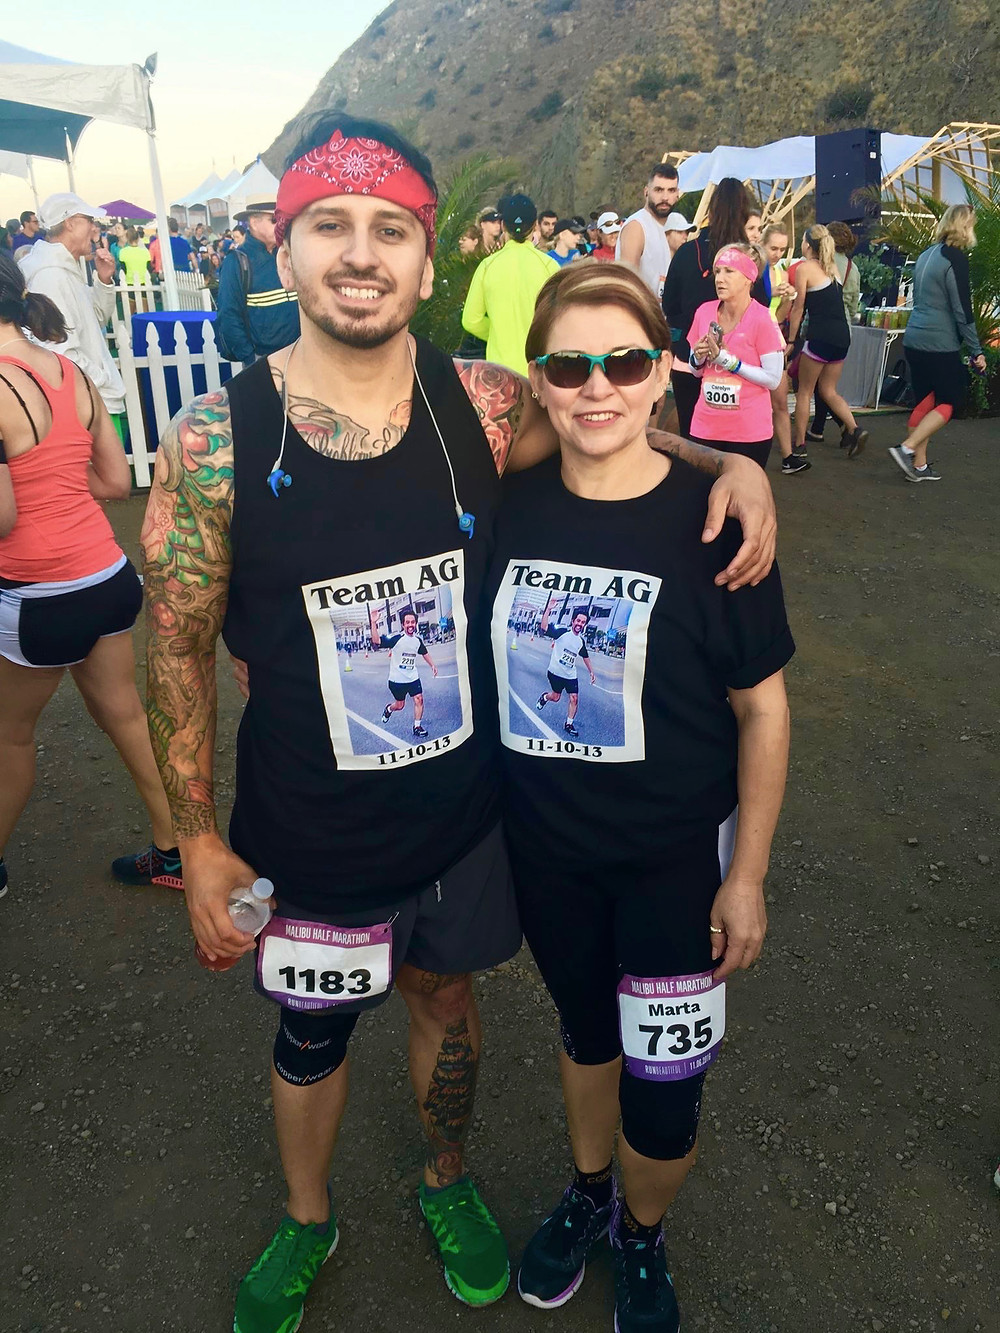 Marta and Cesar at the start line of the 2016 Malibu Half Marathon